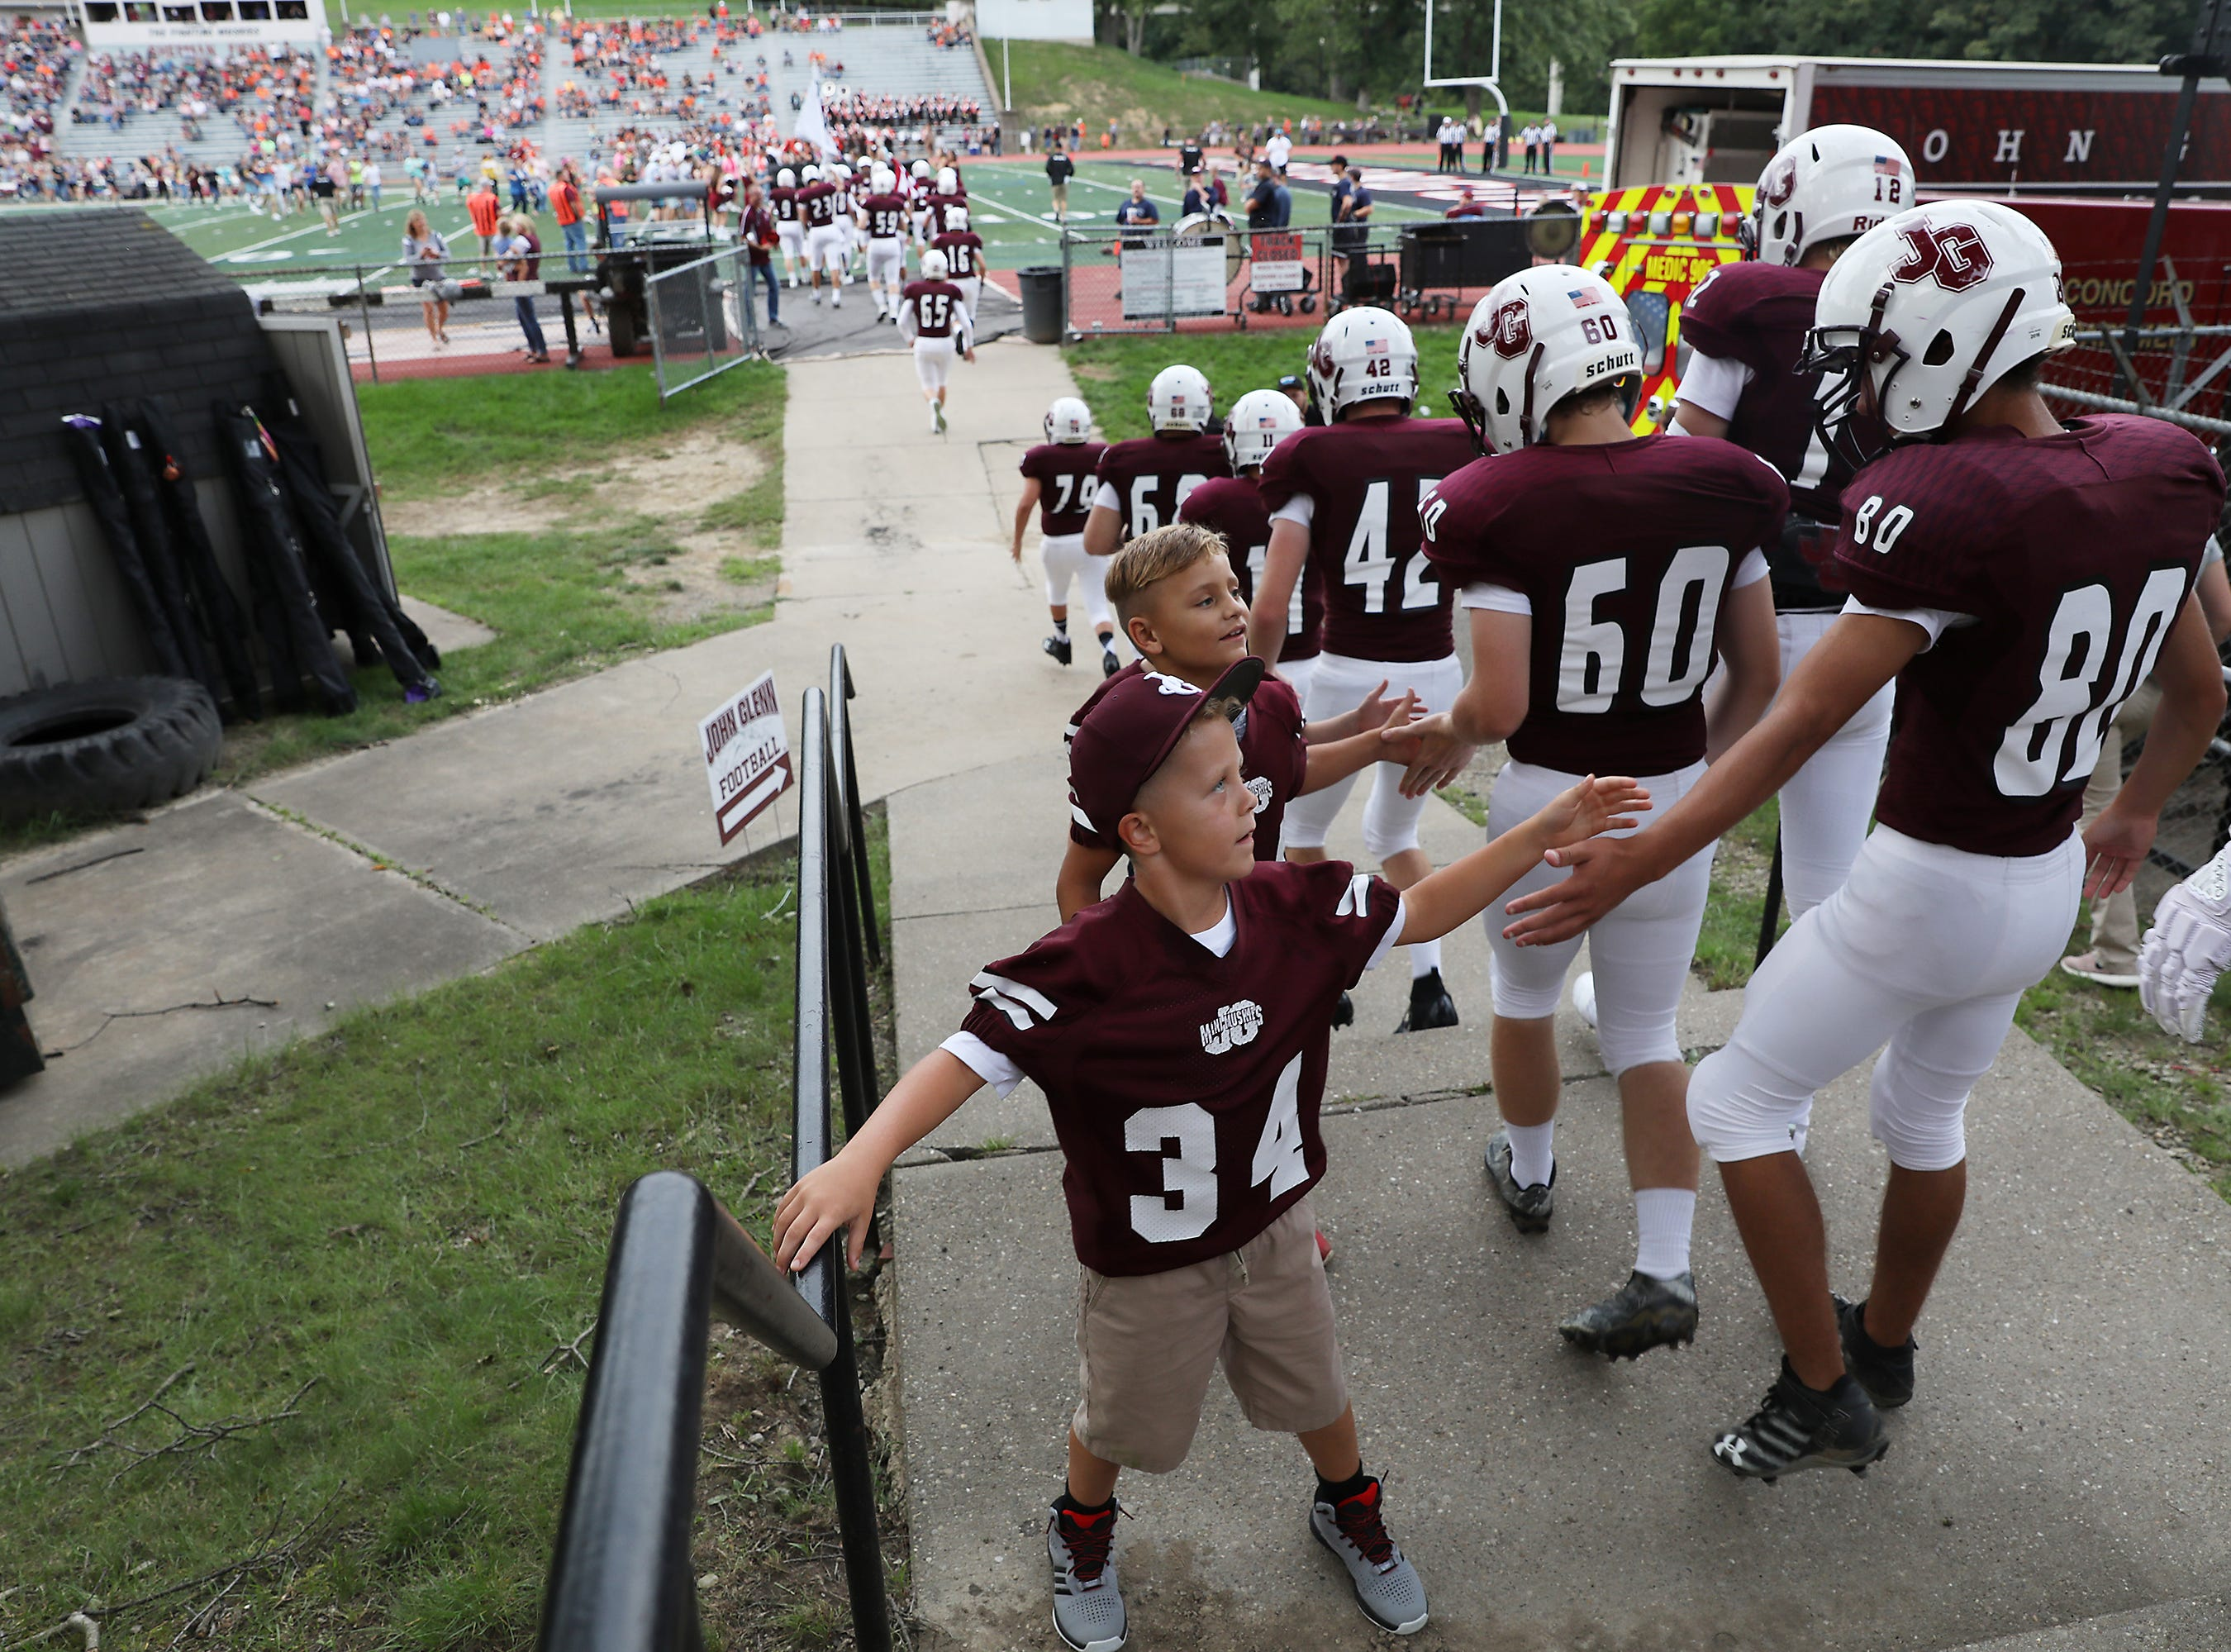 Youngsters seek high fives from John Glenn as the Muskies head to the field to take on Meadowbrook.